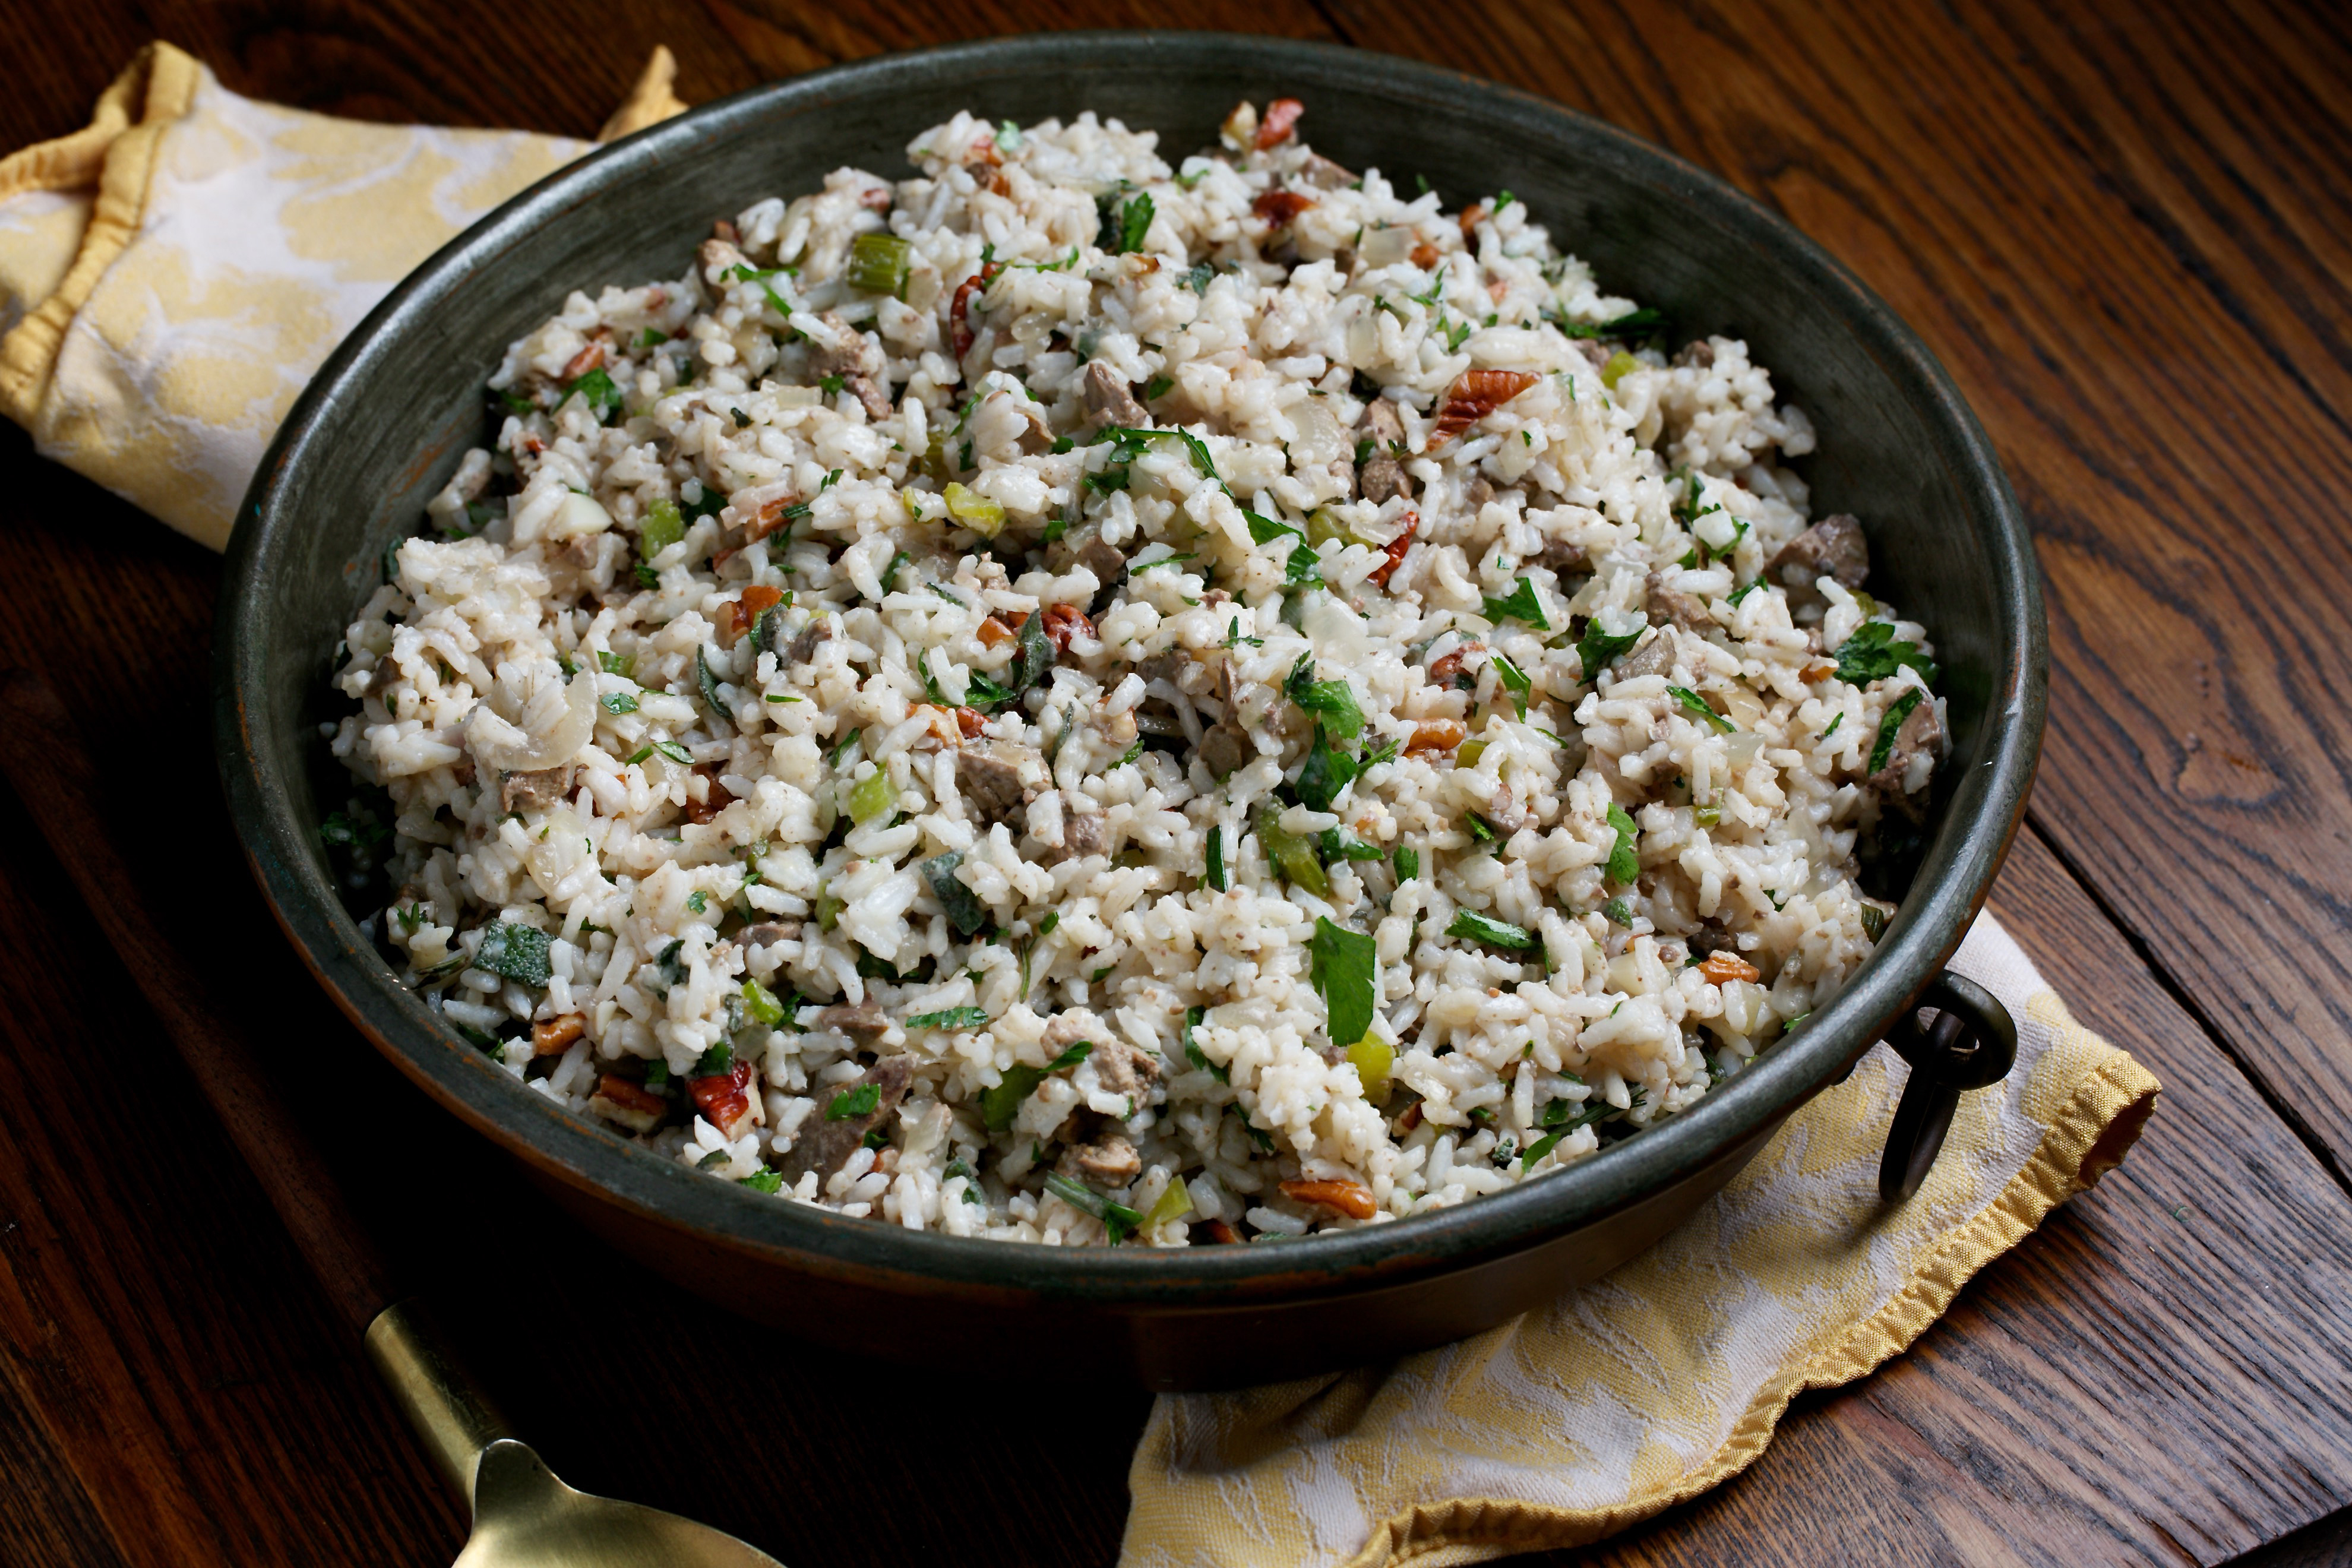 Charleston Rice Dressing. MUST CREDIT: Photo by Deb Lindsey for The Washington Post.